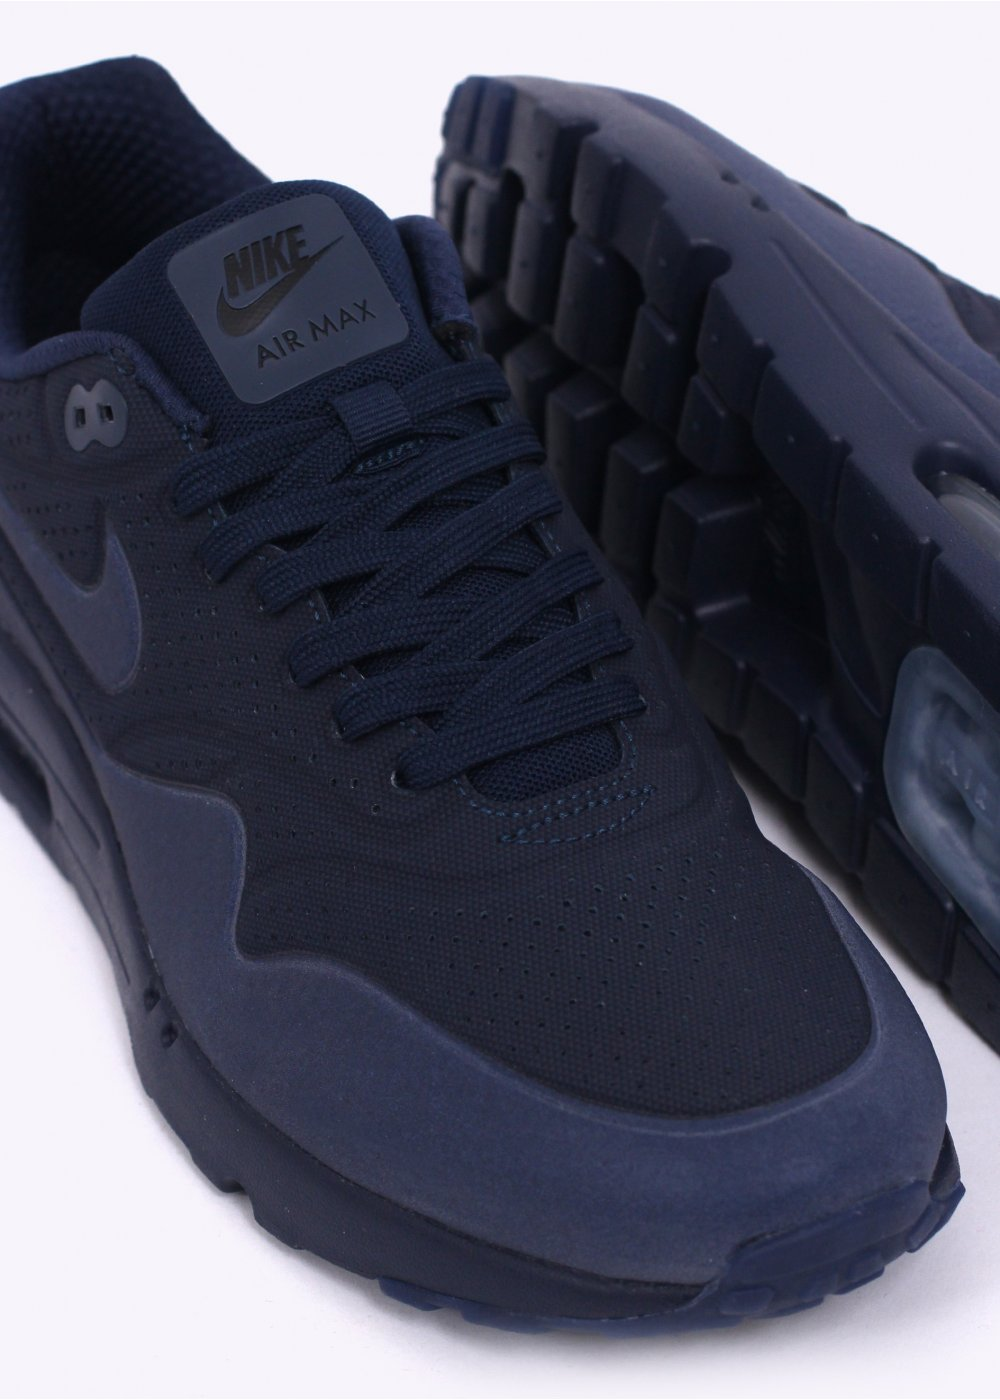 Nike Air Max 1 Ultra Moire Navy | SNEAKERADDICT.NET